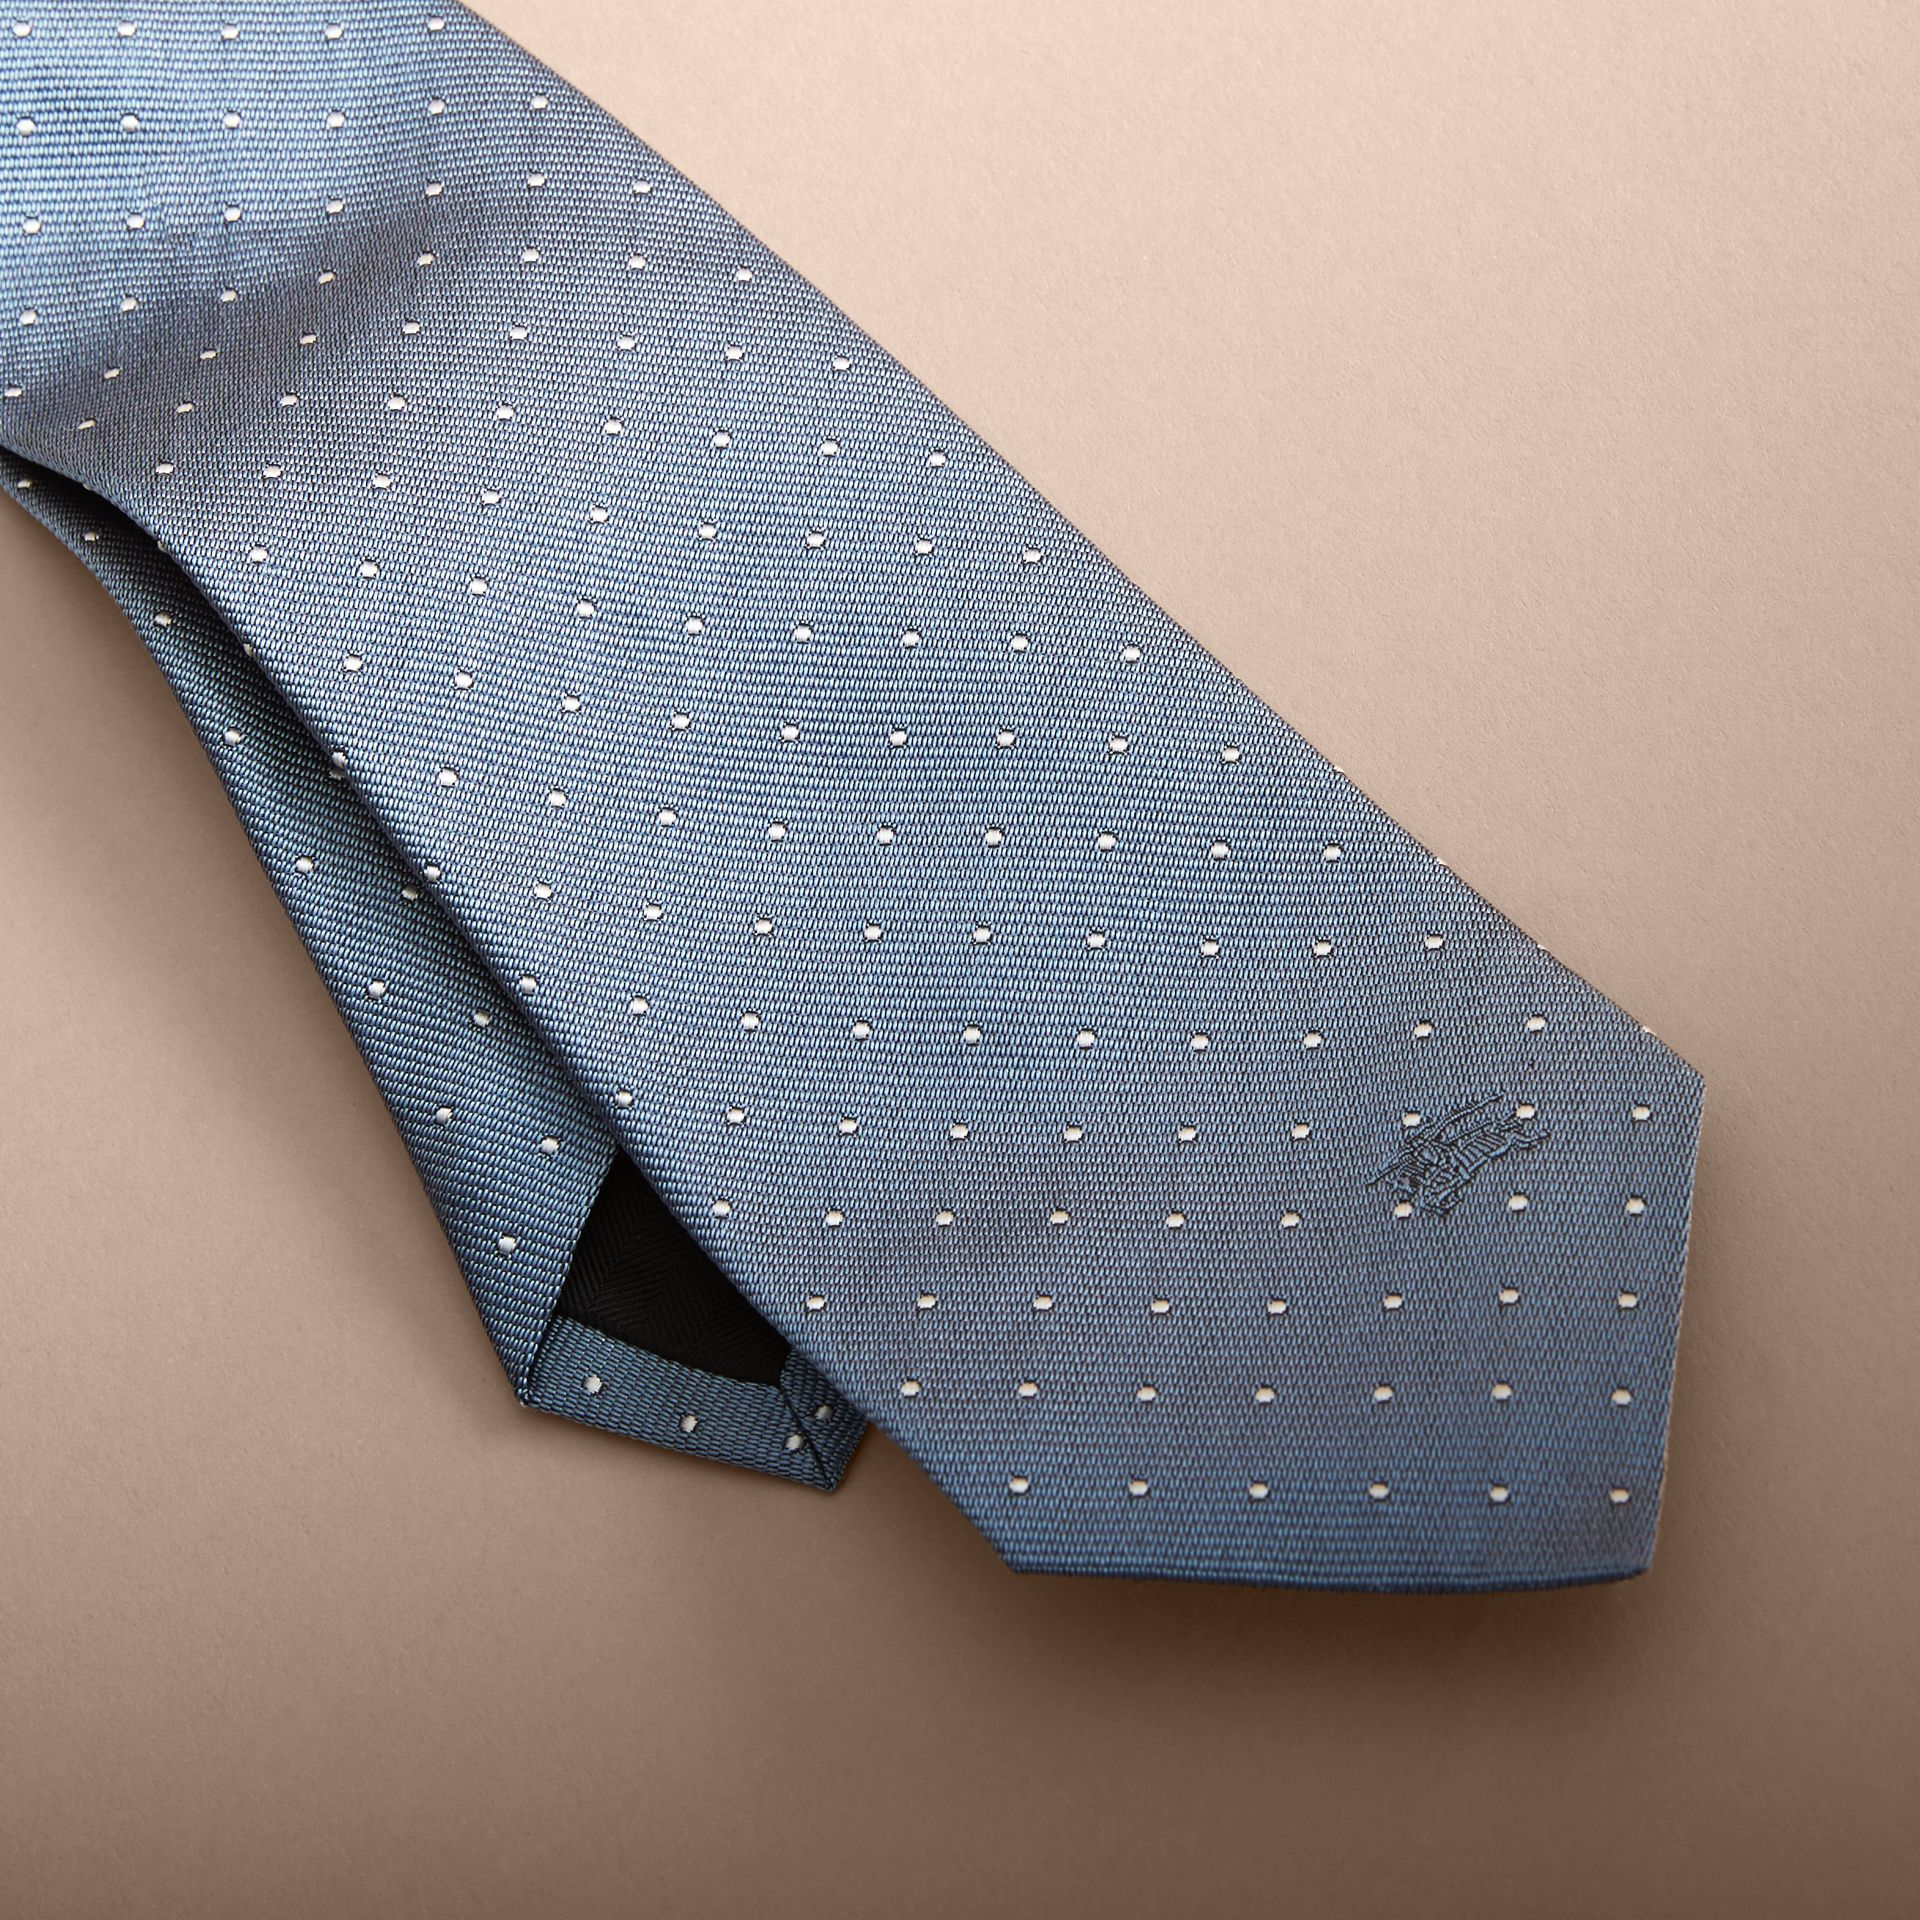 Modern Cut Polka-dot Silk Tie in Light Blue - Men | Burberry - gallery image 2